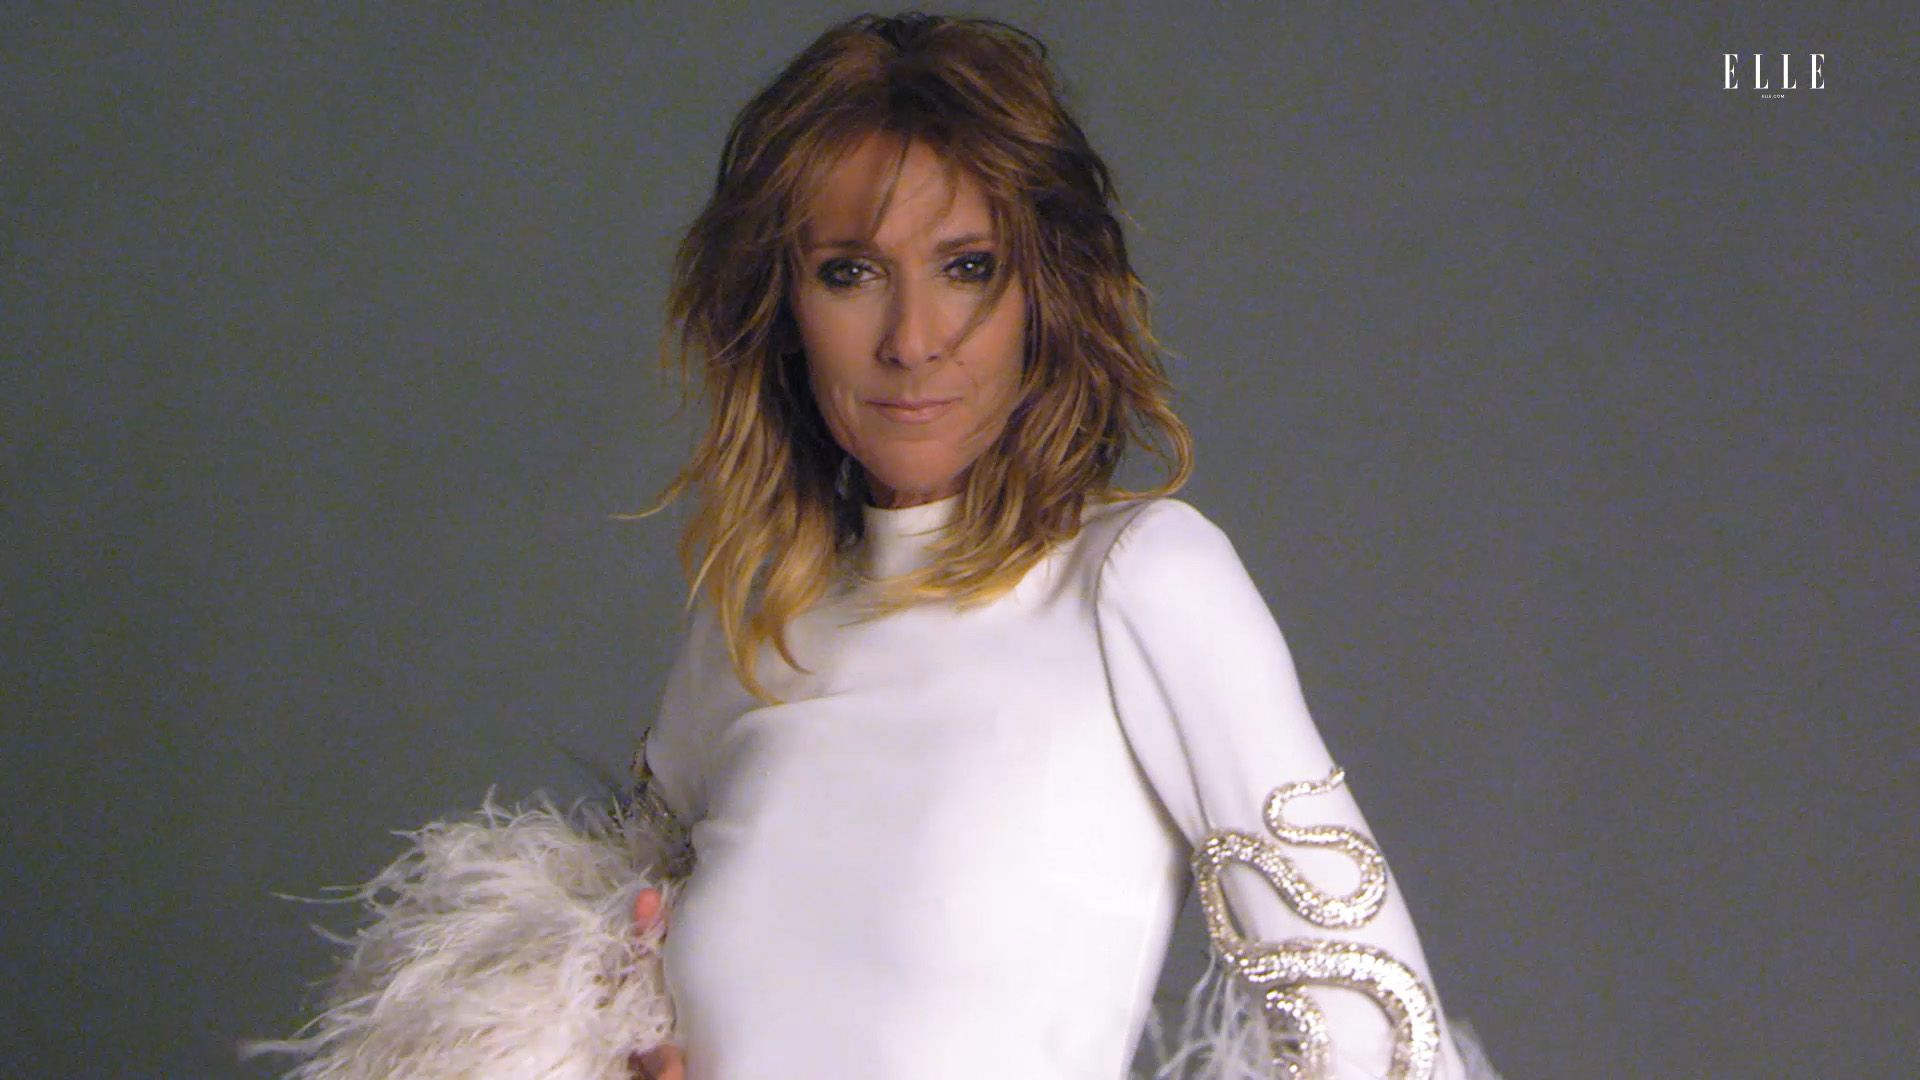 At 51, Celine Dion Just Showed Off Her Crazy Flexibility By Doing A Perfect Split On Instagram